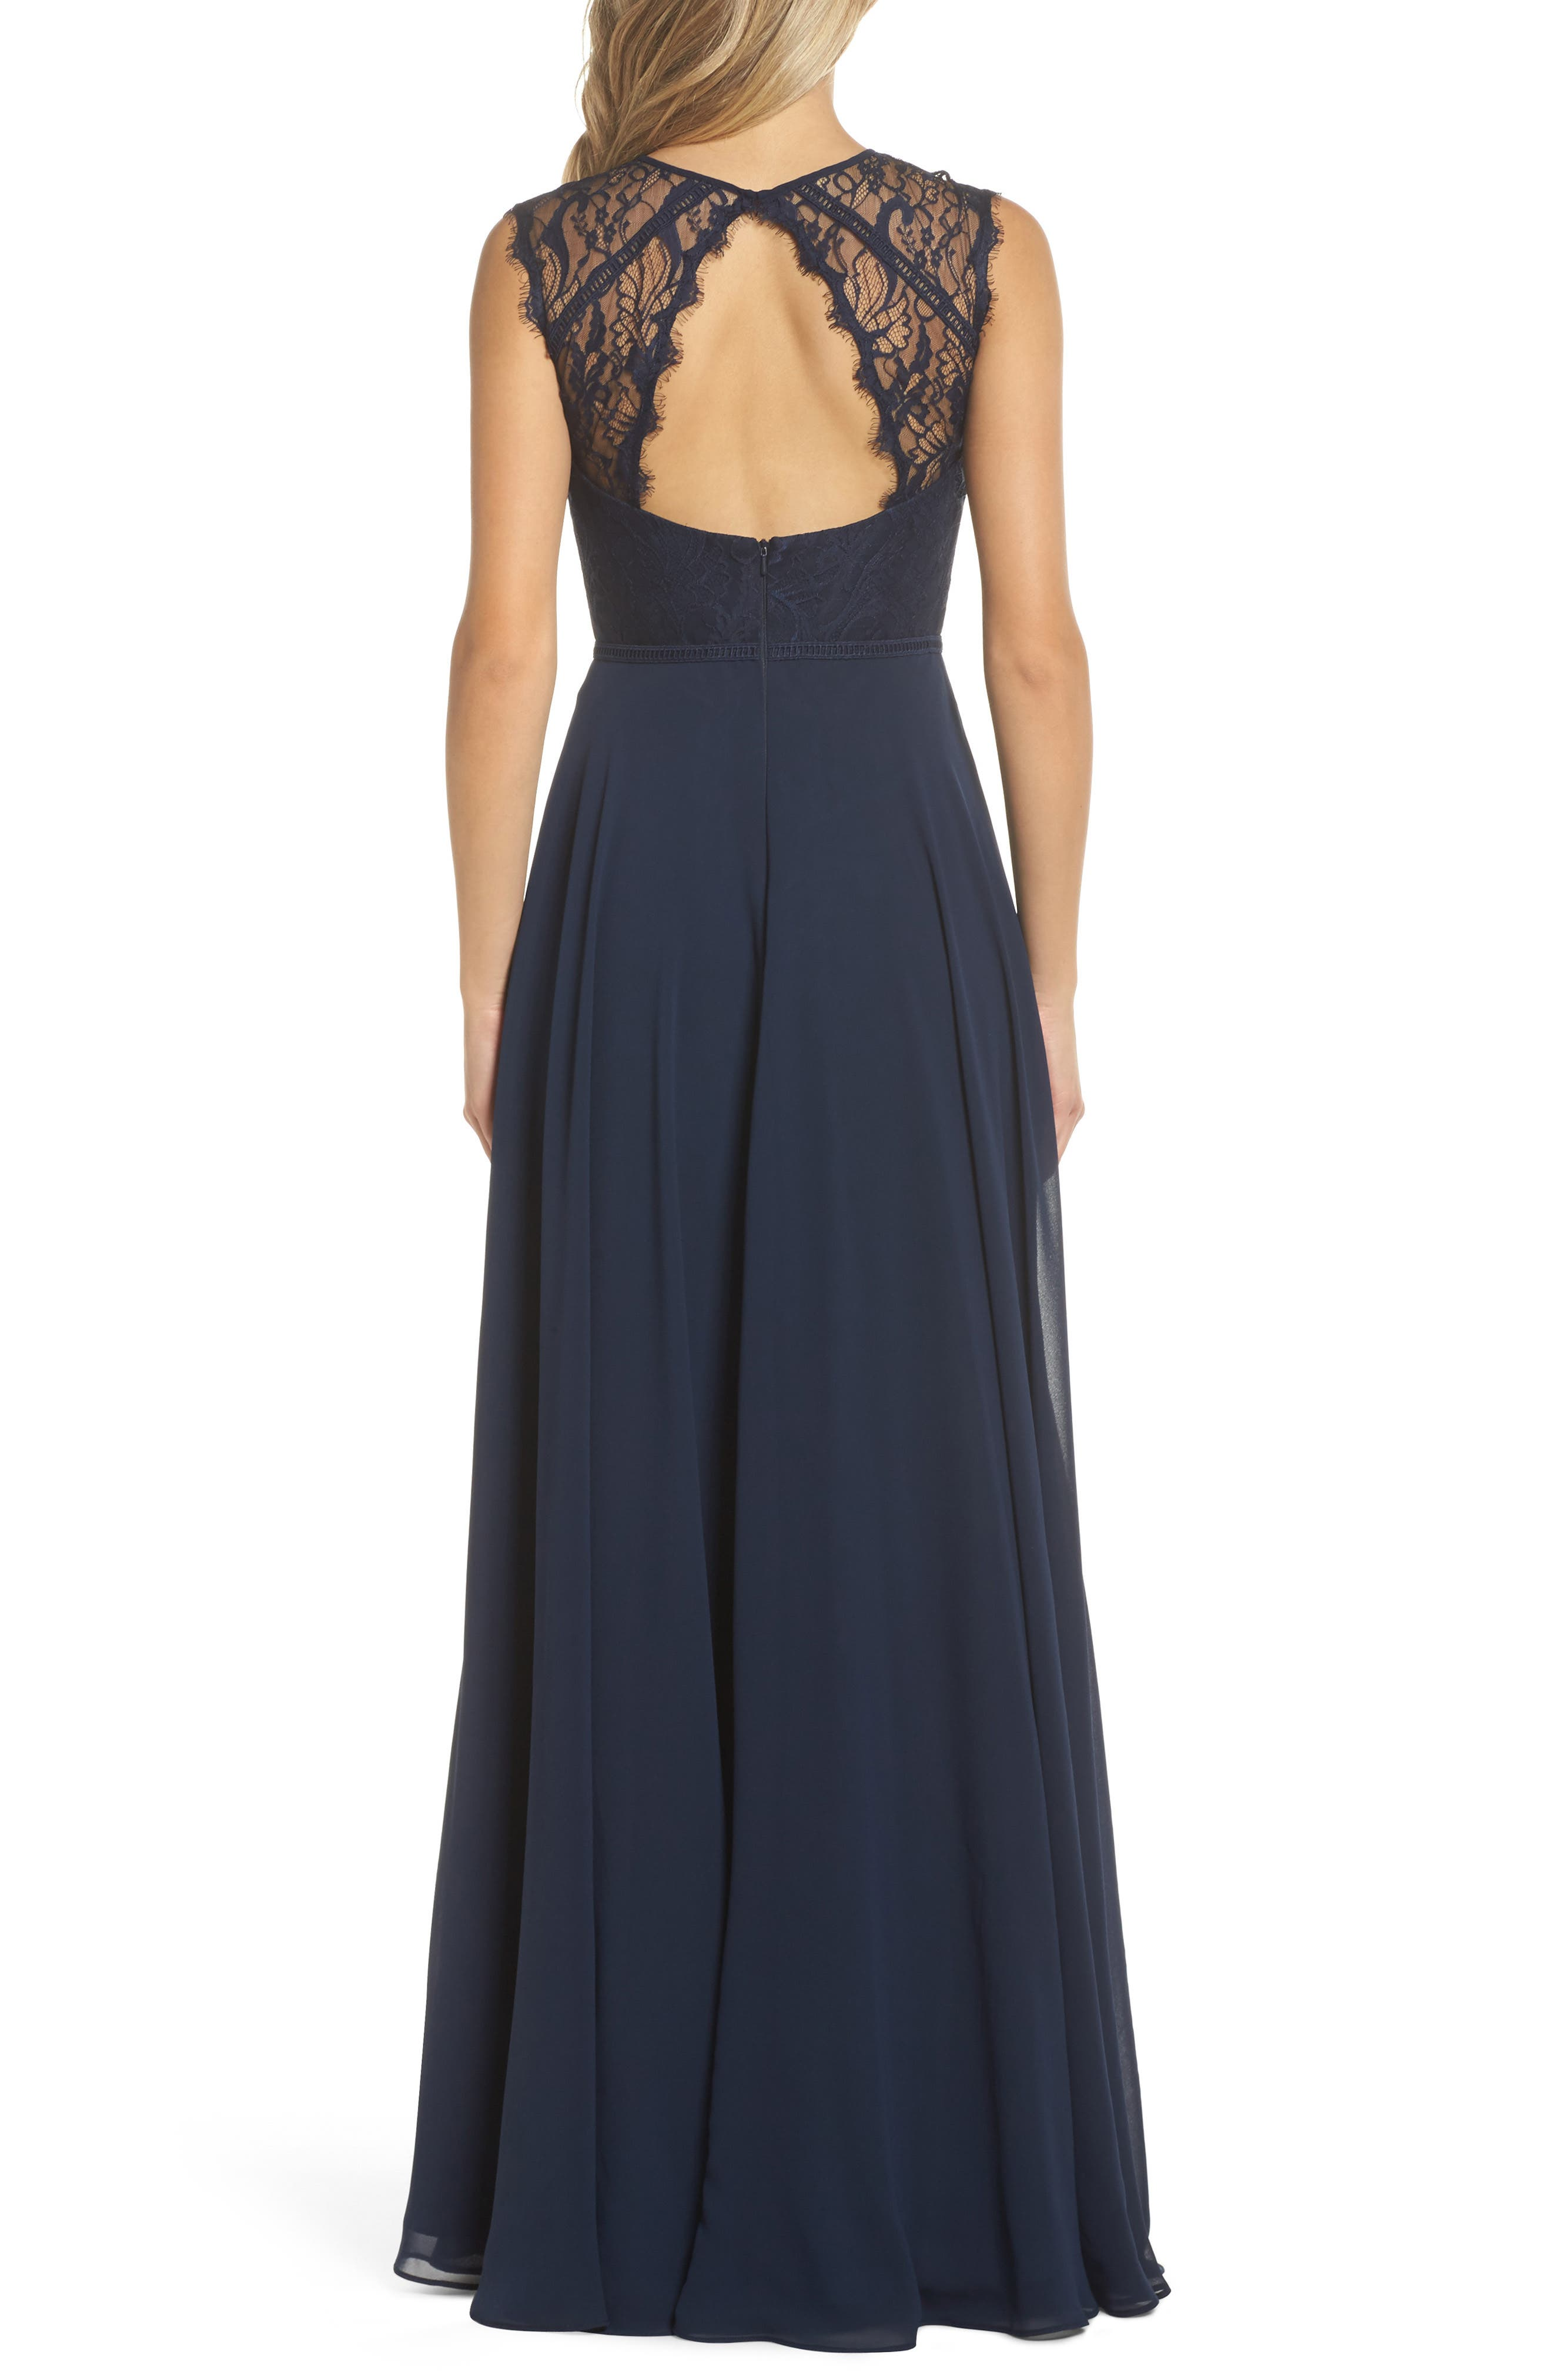 HAYLEY PAIGE OCCASIONS, Lace & Chiffon Gown, Alternate thumbnail 2, color, NAVY